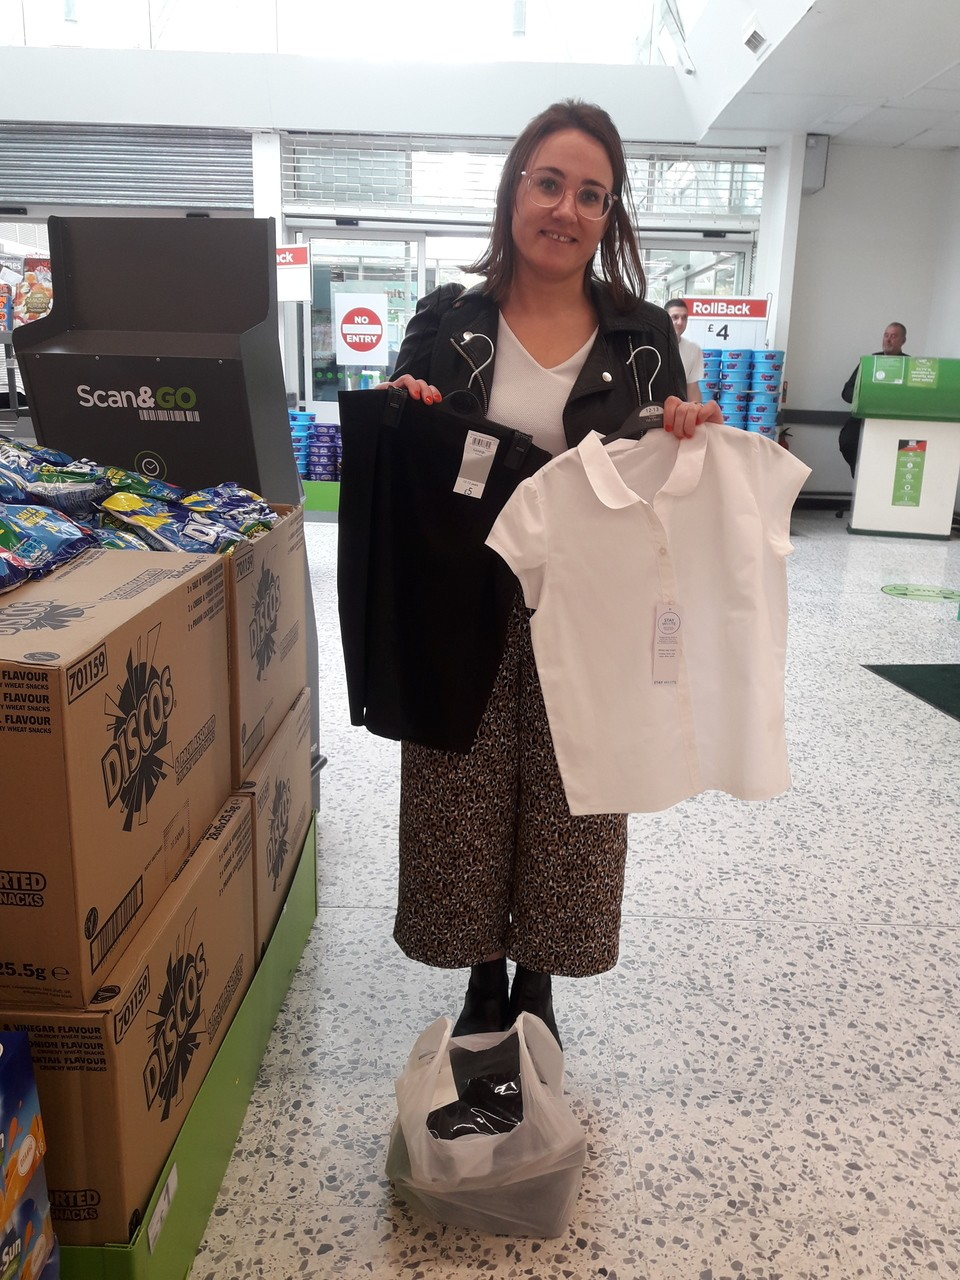 We have helped three families  | Asda Newport